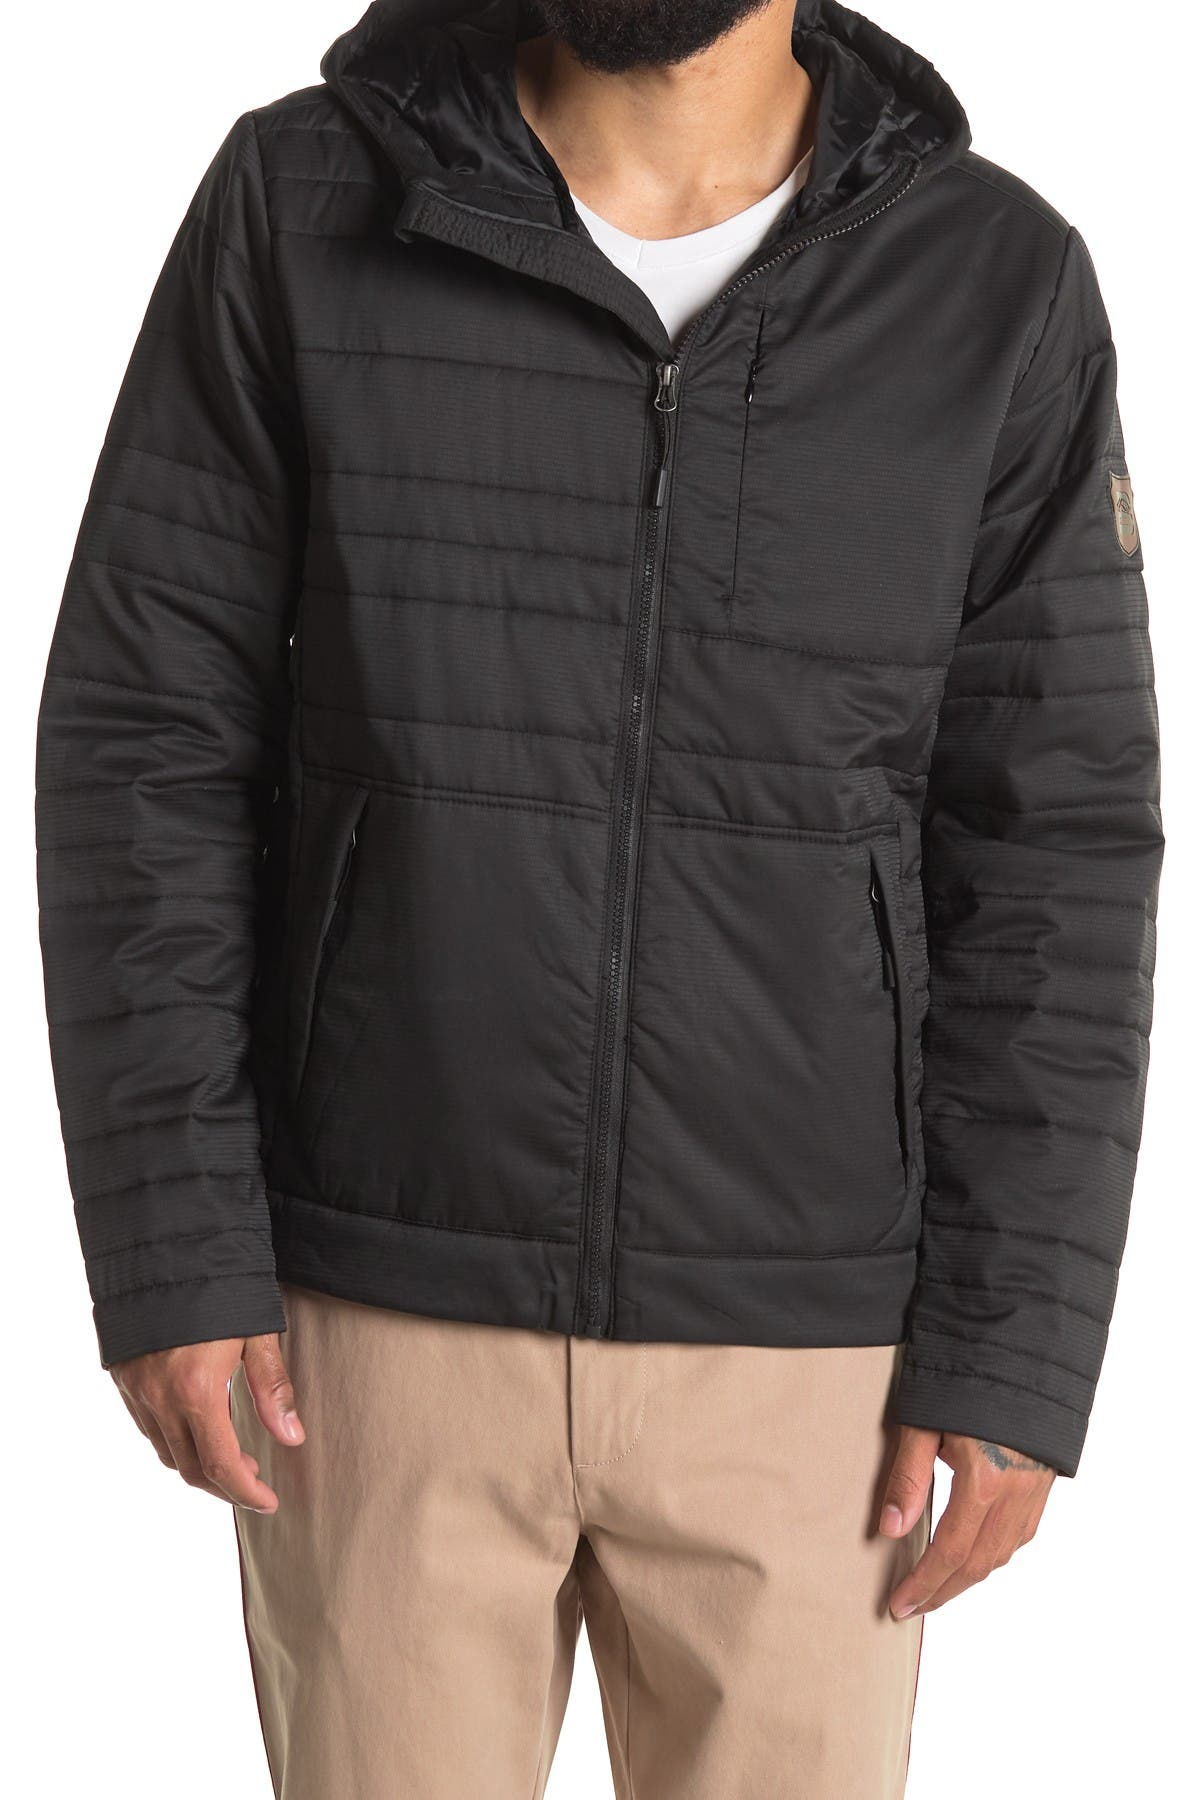 Image of Be Boundless Quilted Soft Touch Jacket